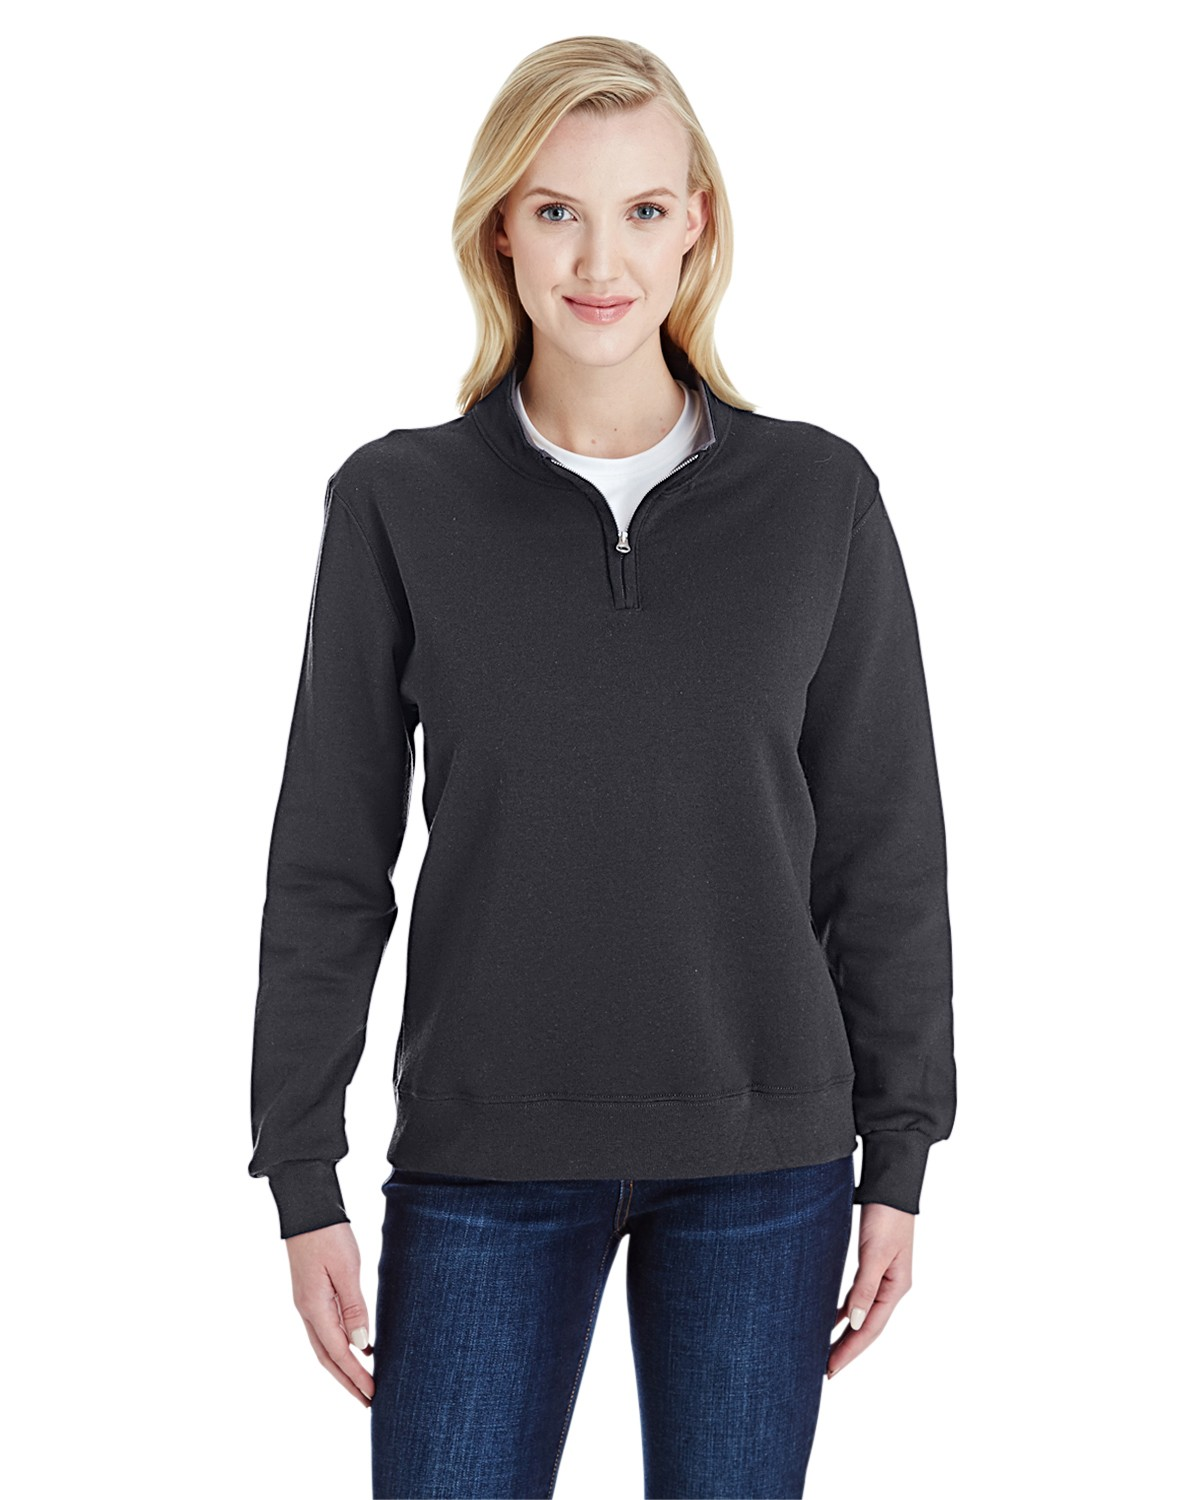 LSF95R Fruit of the Loom CHARCOAL HEATHER